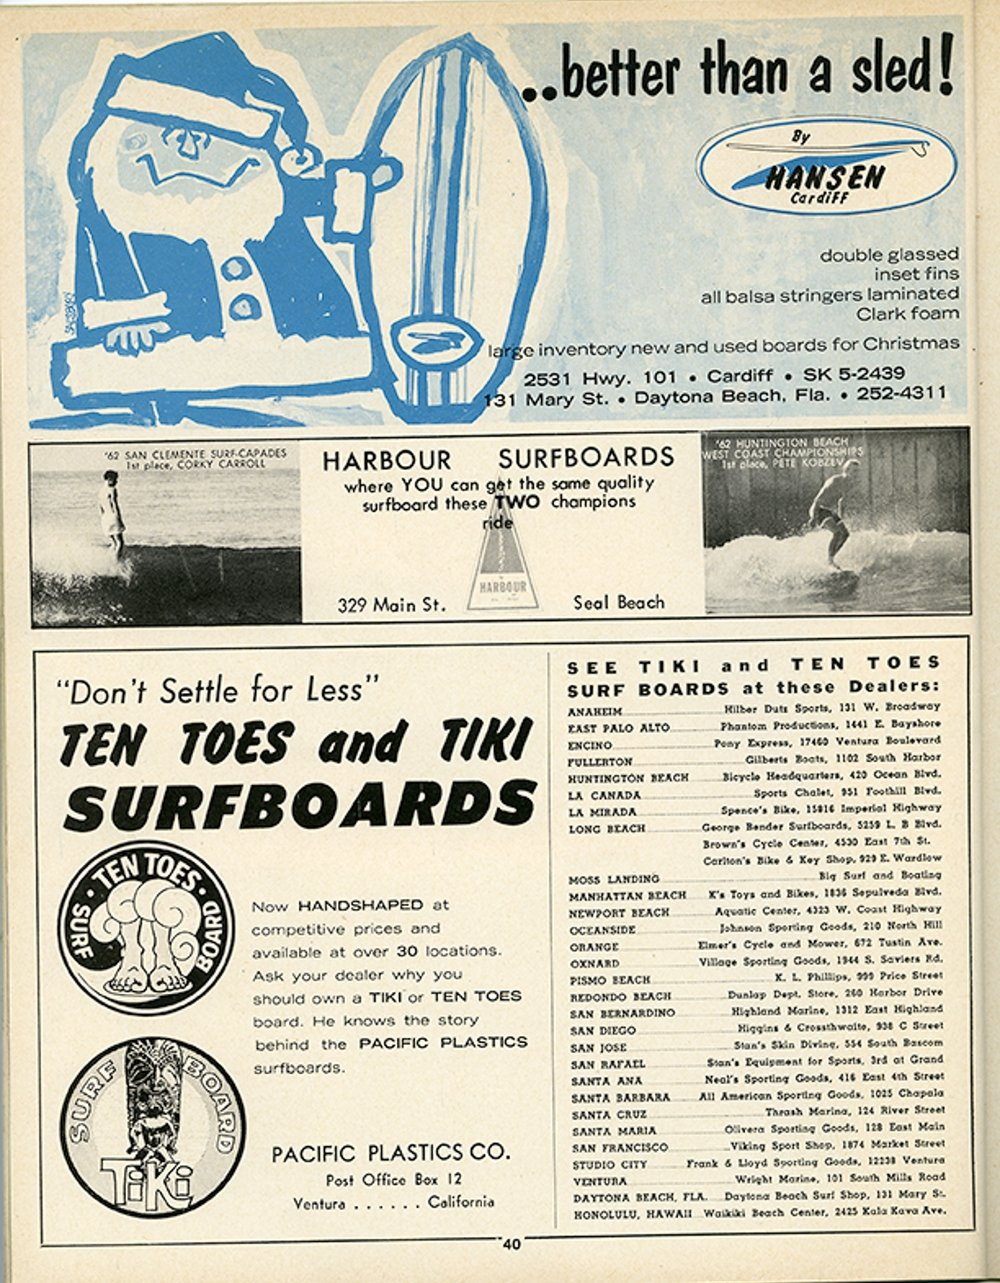 SURFER MAG 1962-63 VOL3